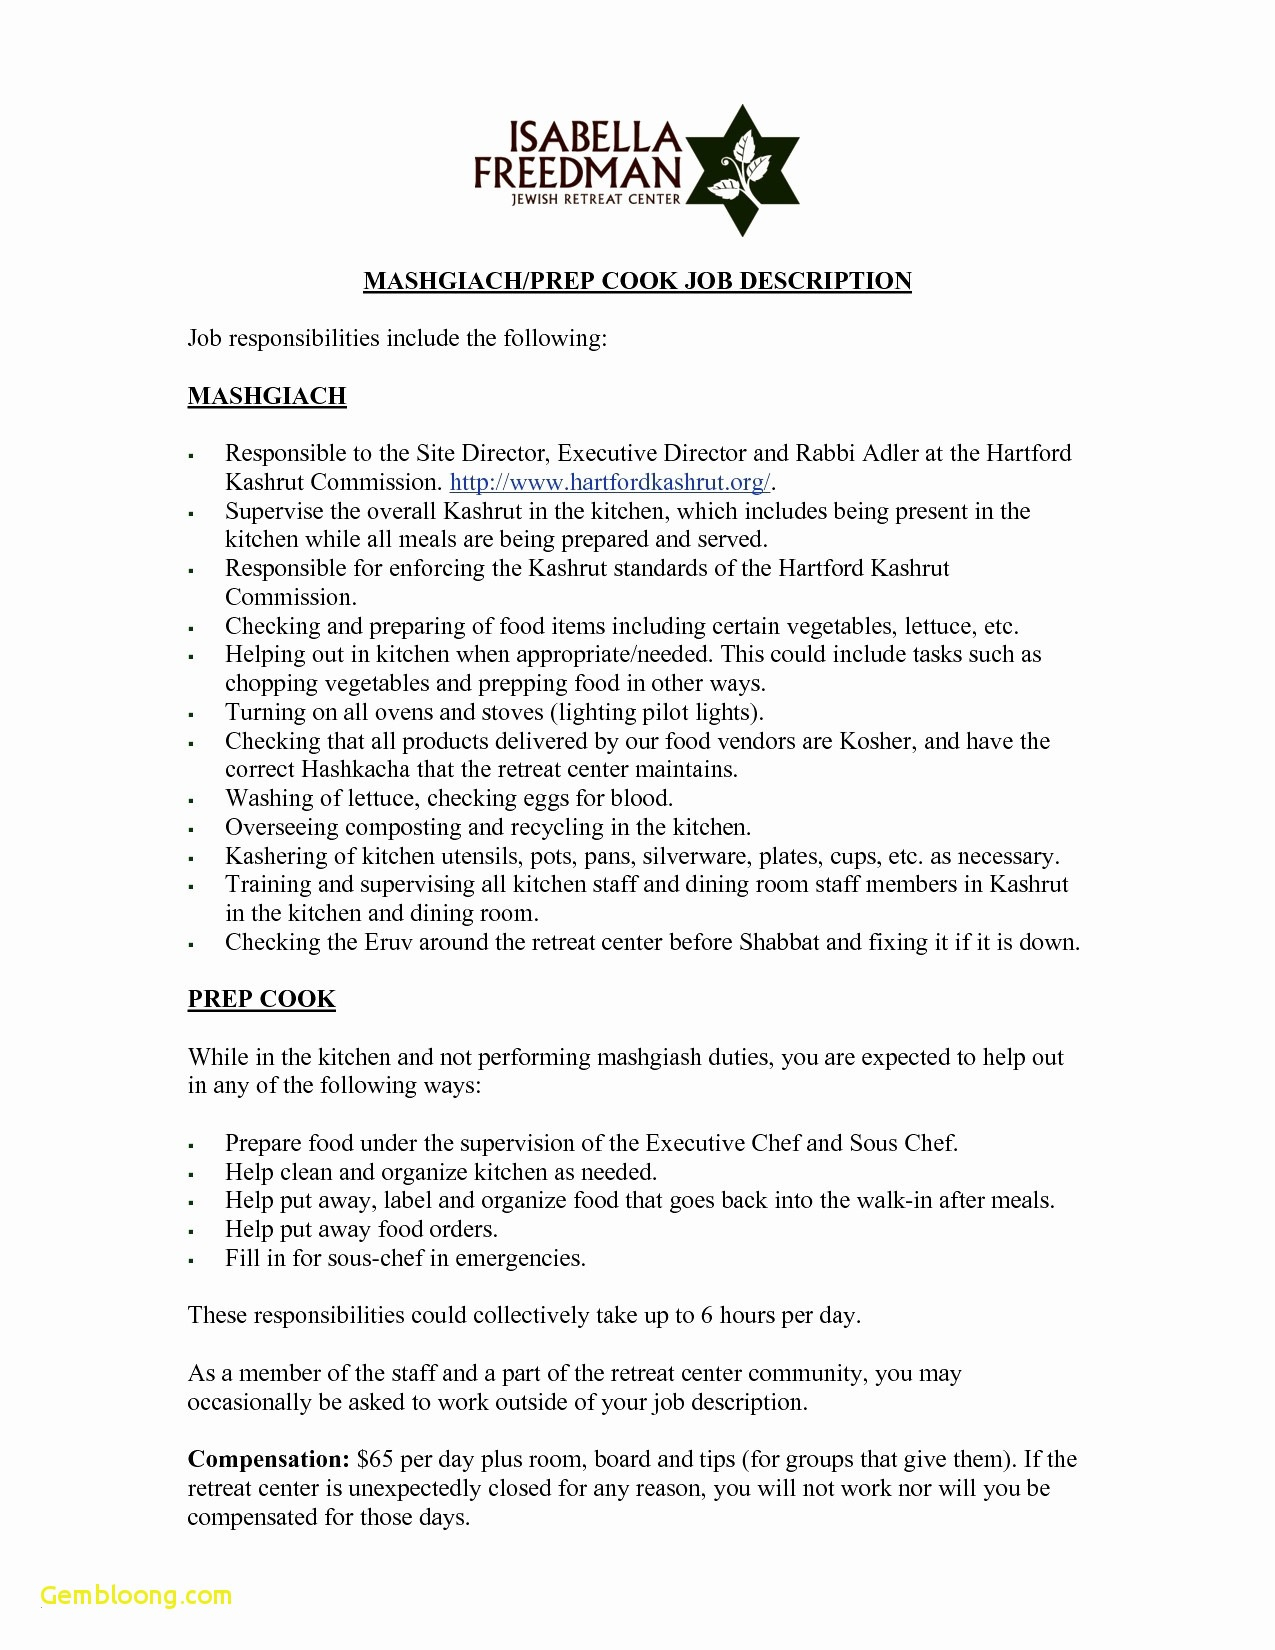 Free Acting Resume Template Download - Performer Resume Template Paragraphrewriter